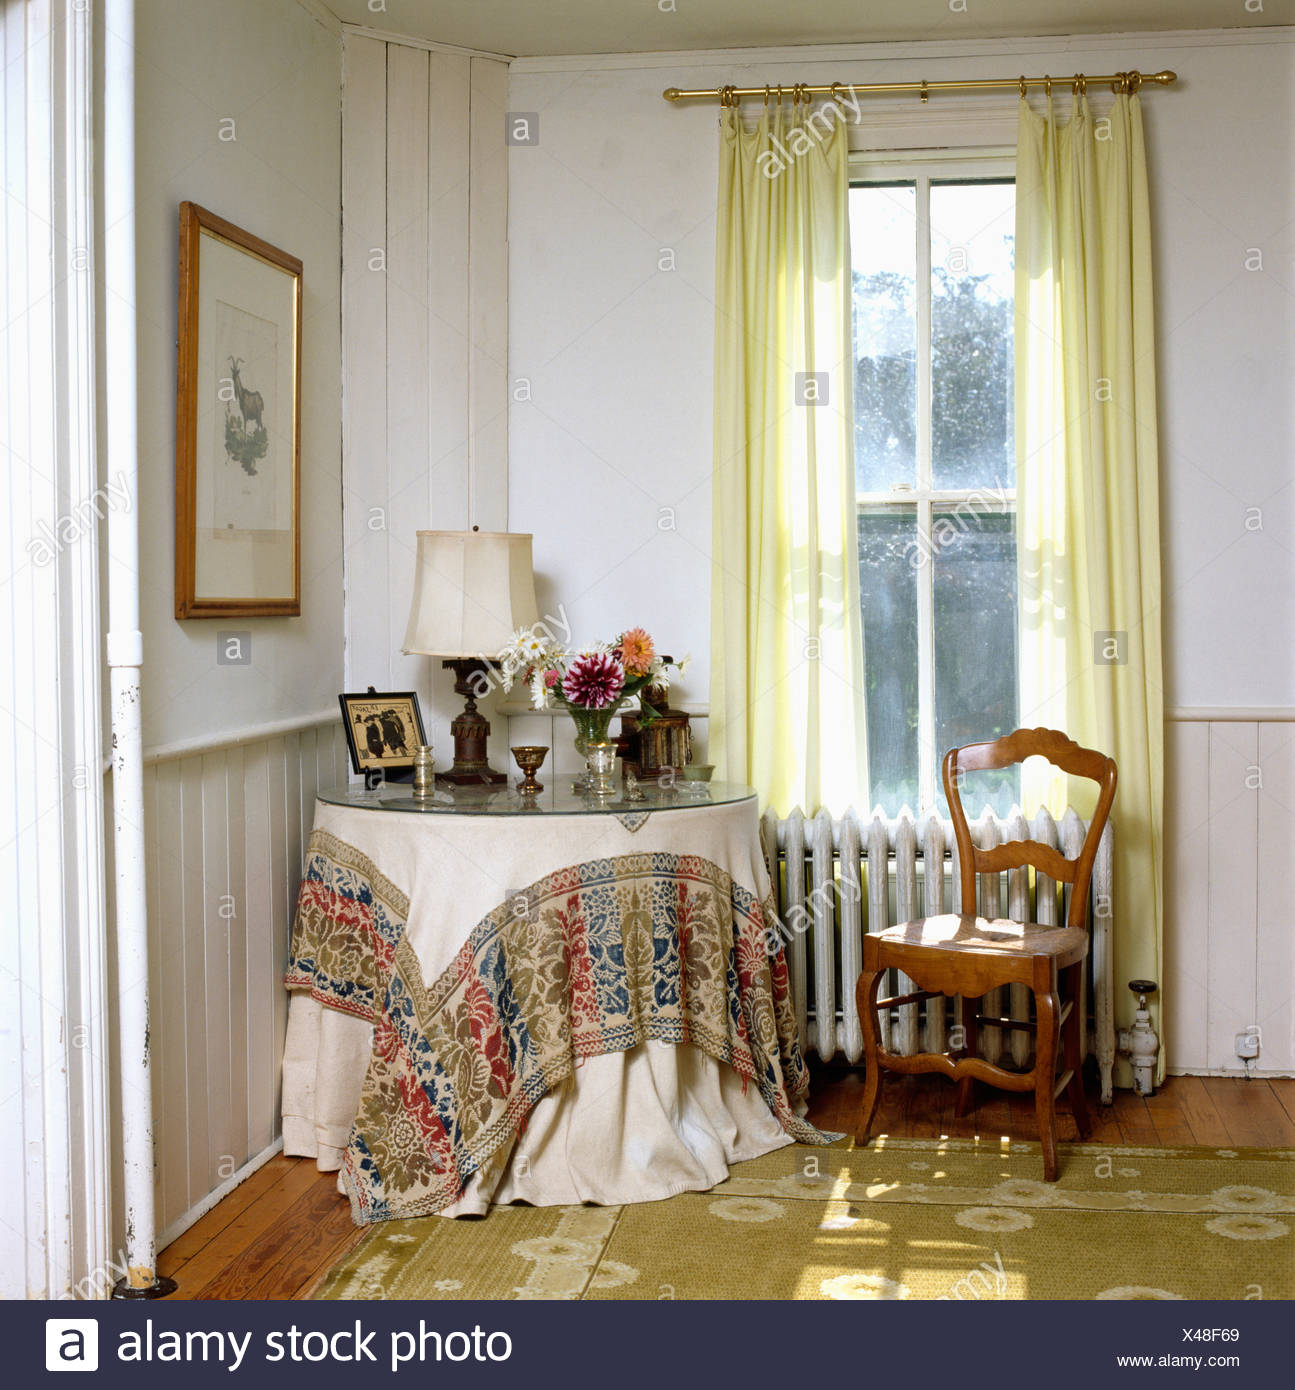 Cloth With Patterned Hem On Circular Table In Corner Of Sitting Room With Yellow Drapes At Tall Window Stock Photo Alamy